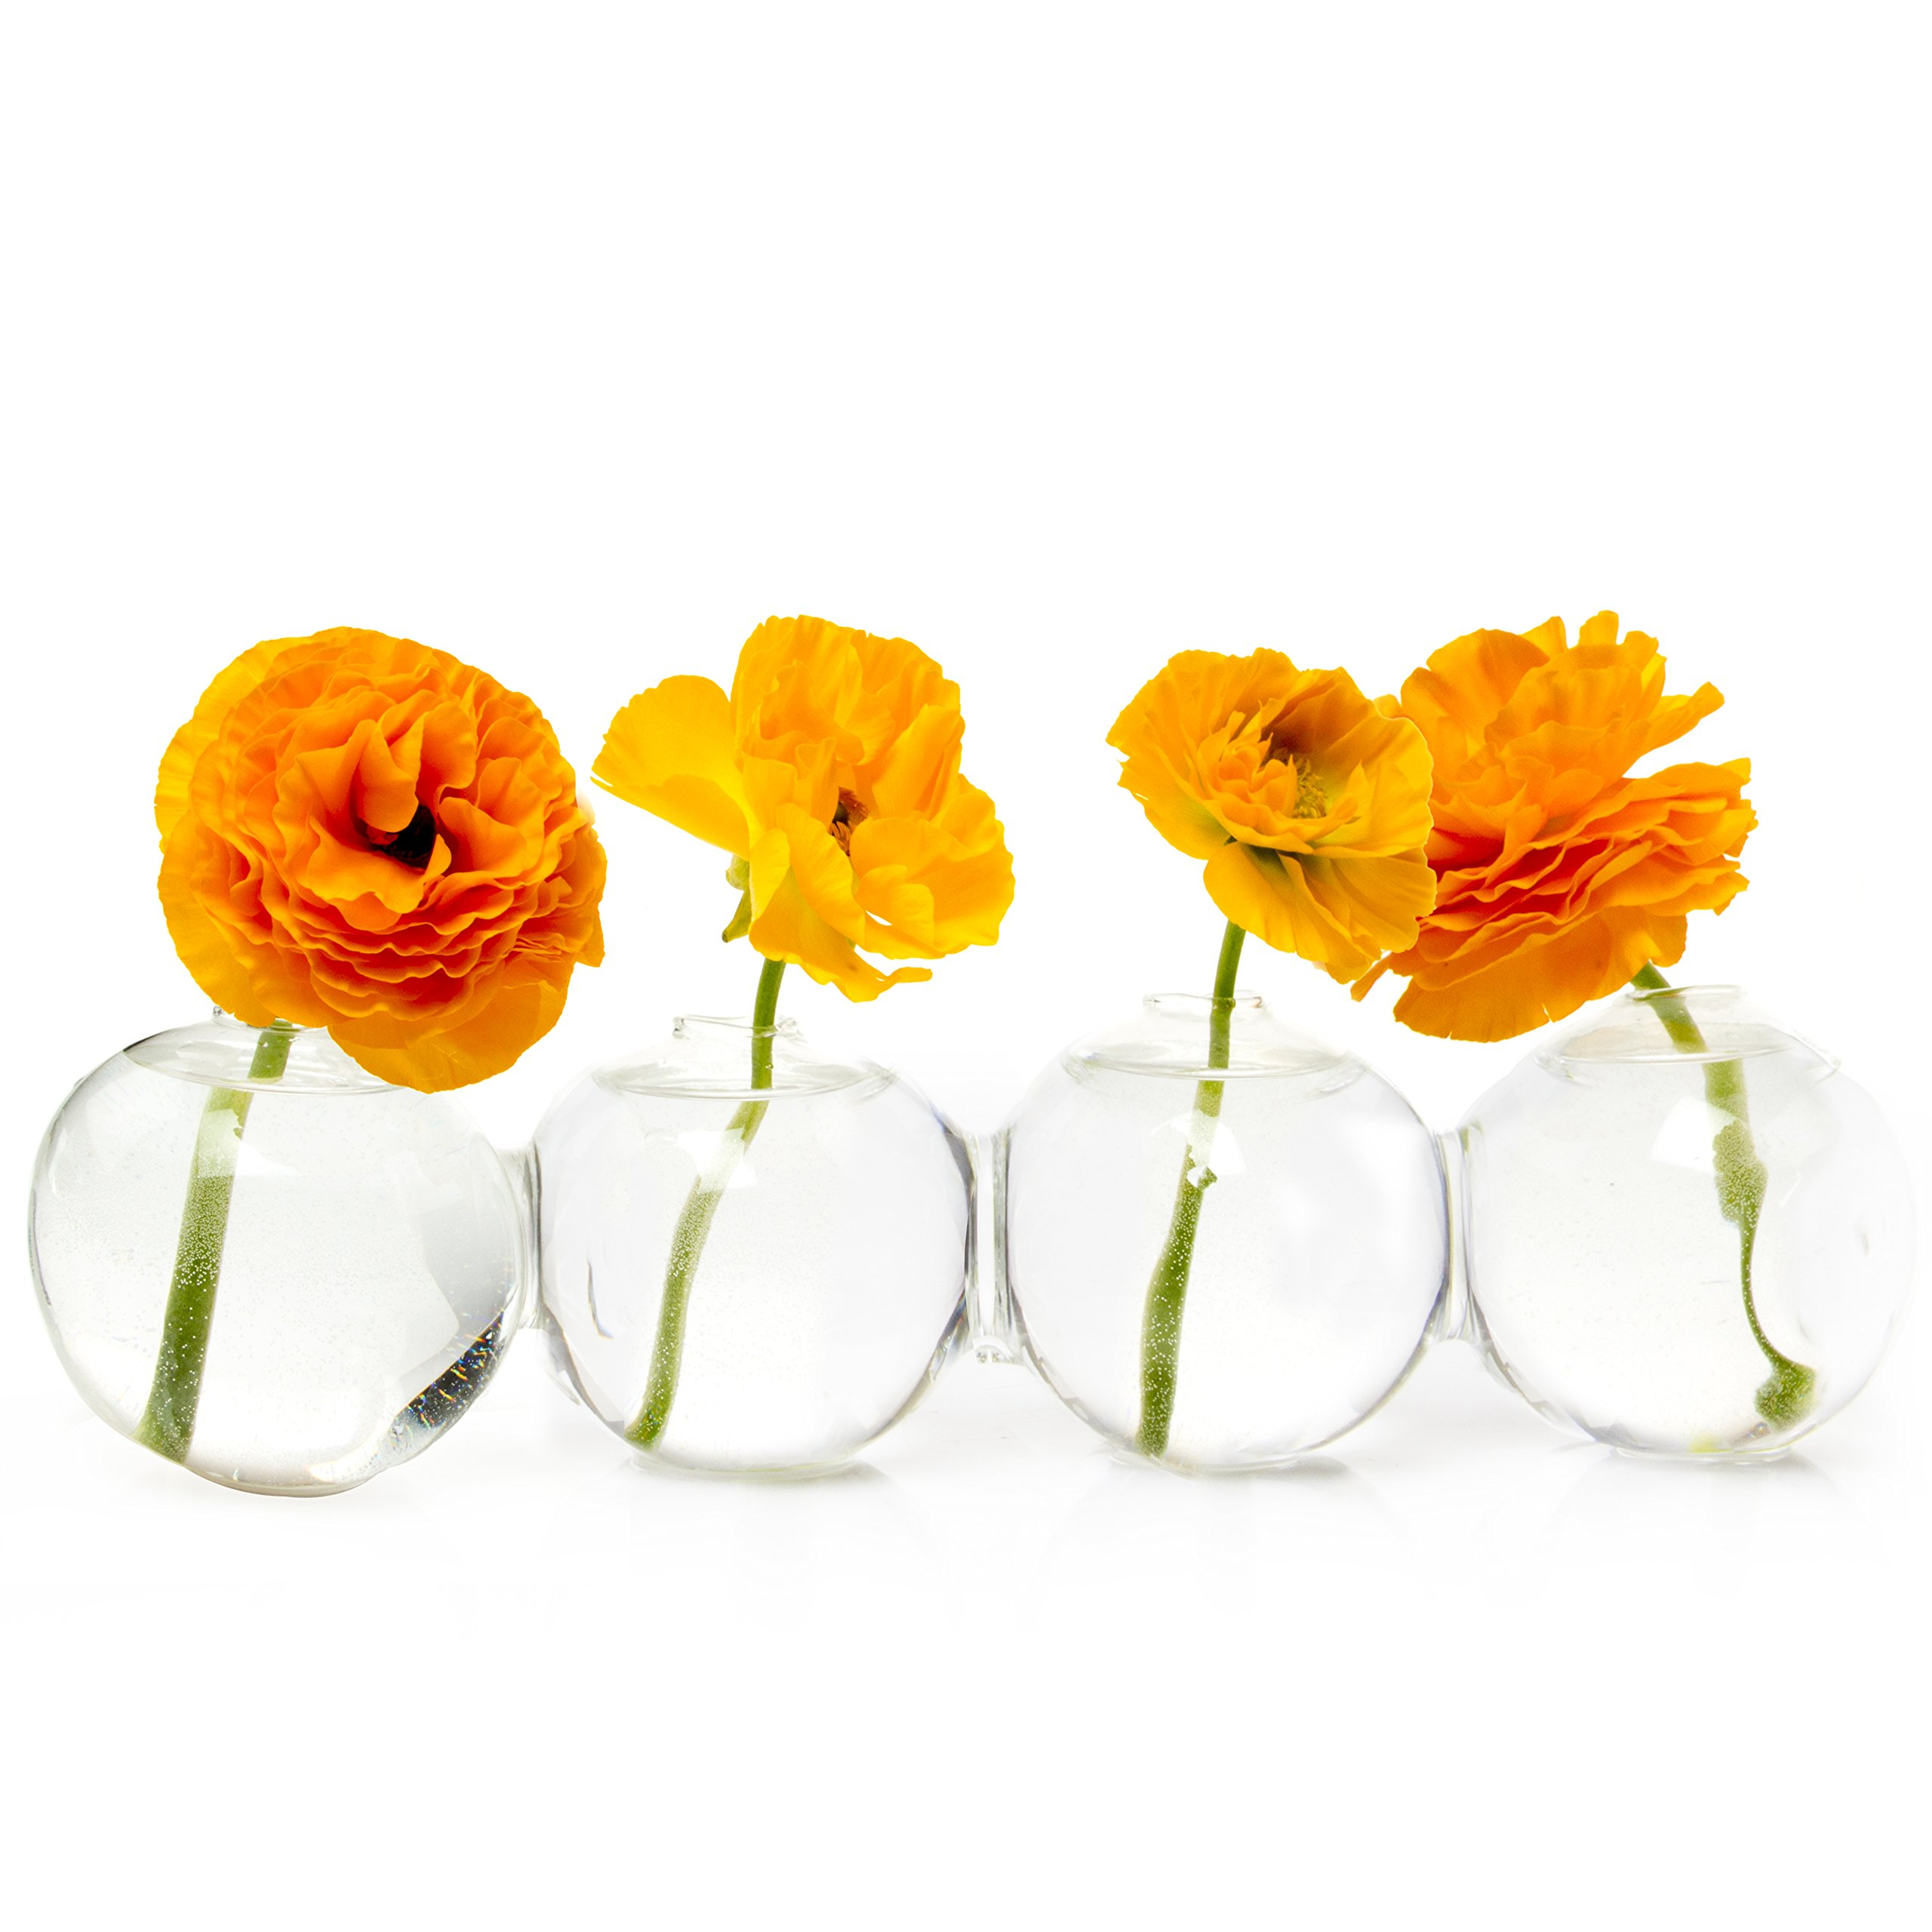 Chive – Big Caterpillar - Large Clear Glass Bud Vase for Short Flowers, Low Sitting Flower Vase, Long Unique Shape Floral Container, Set of 4 Glass Round Connected Balls